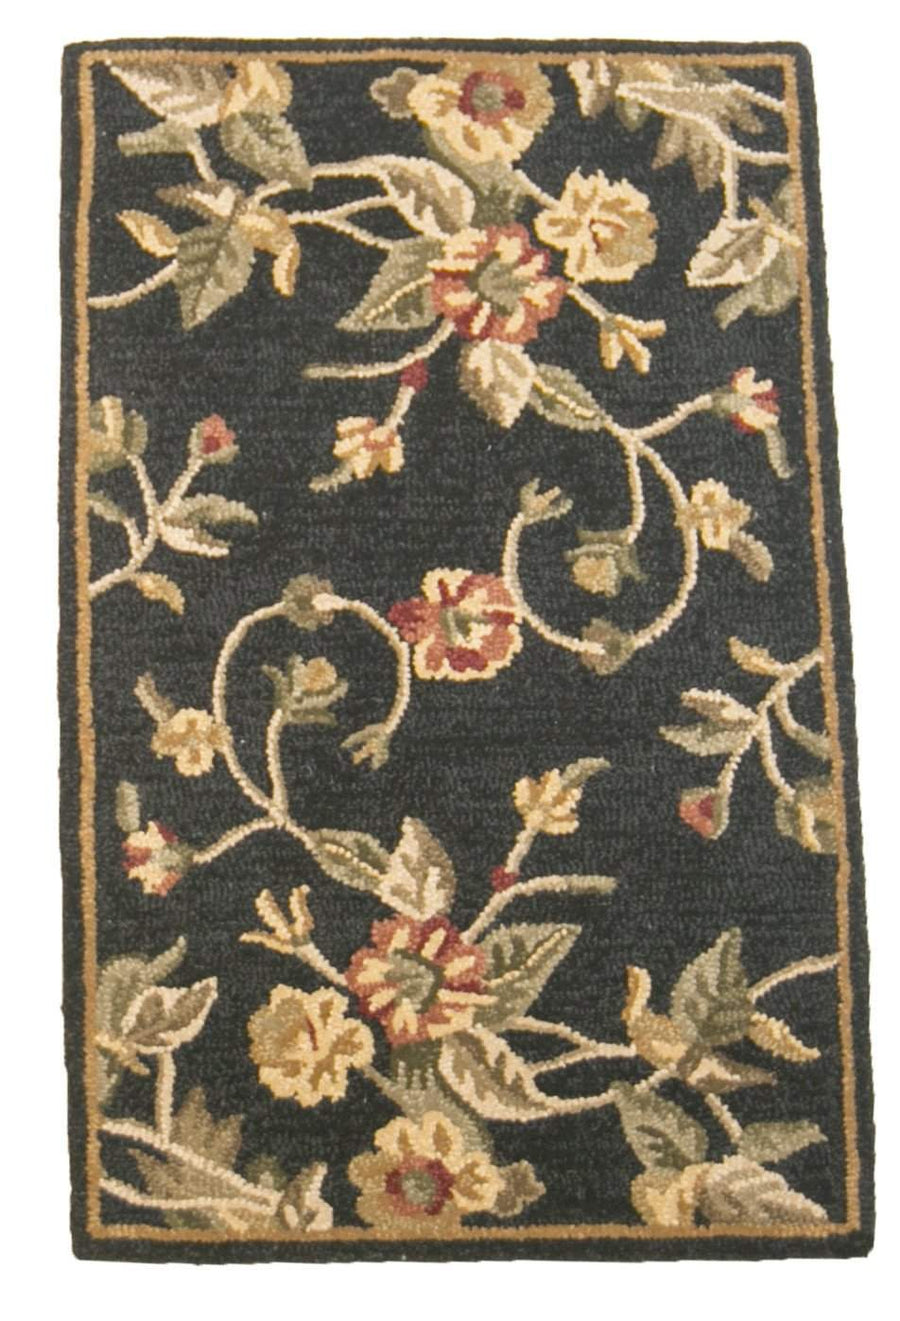 2' x 4' Botanical Black Small Runner Rug-Doormats-Rug Shop and More